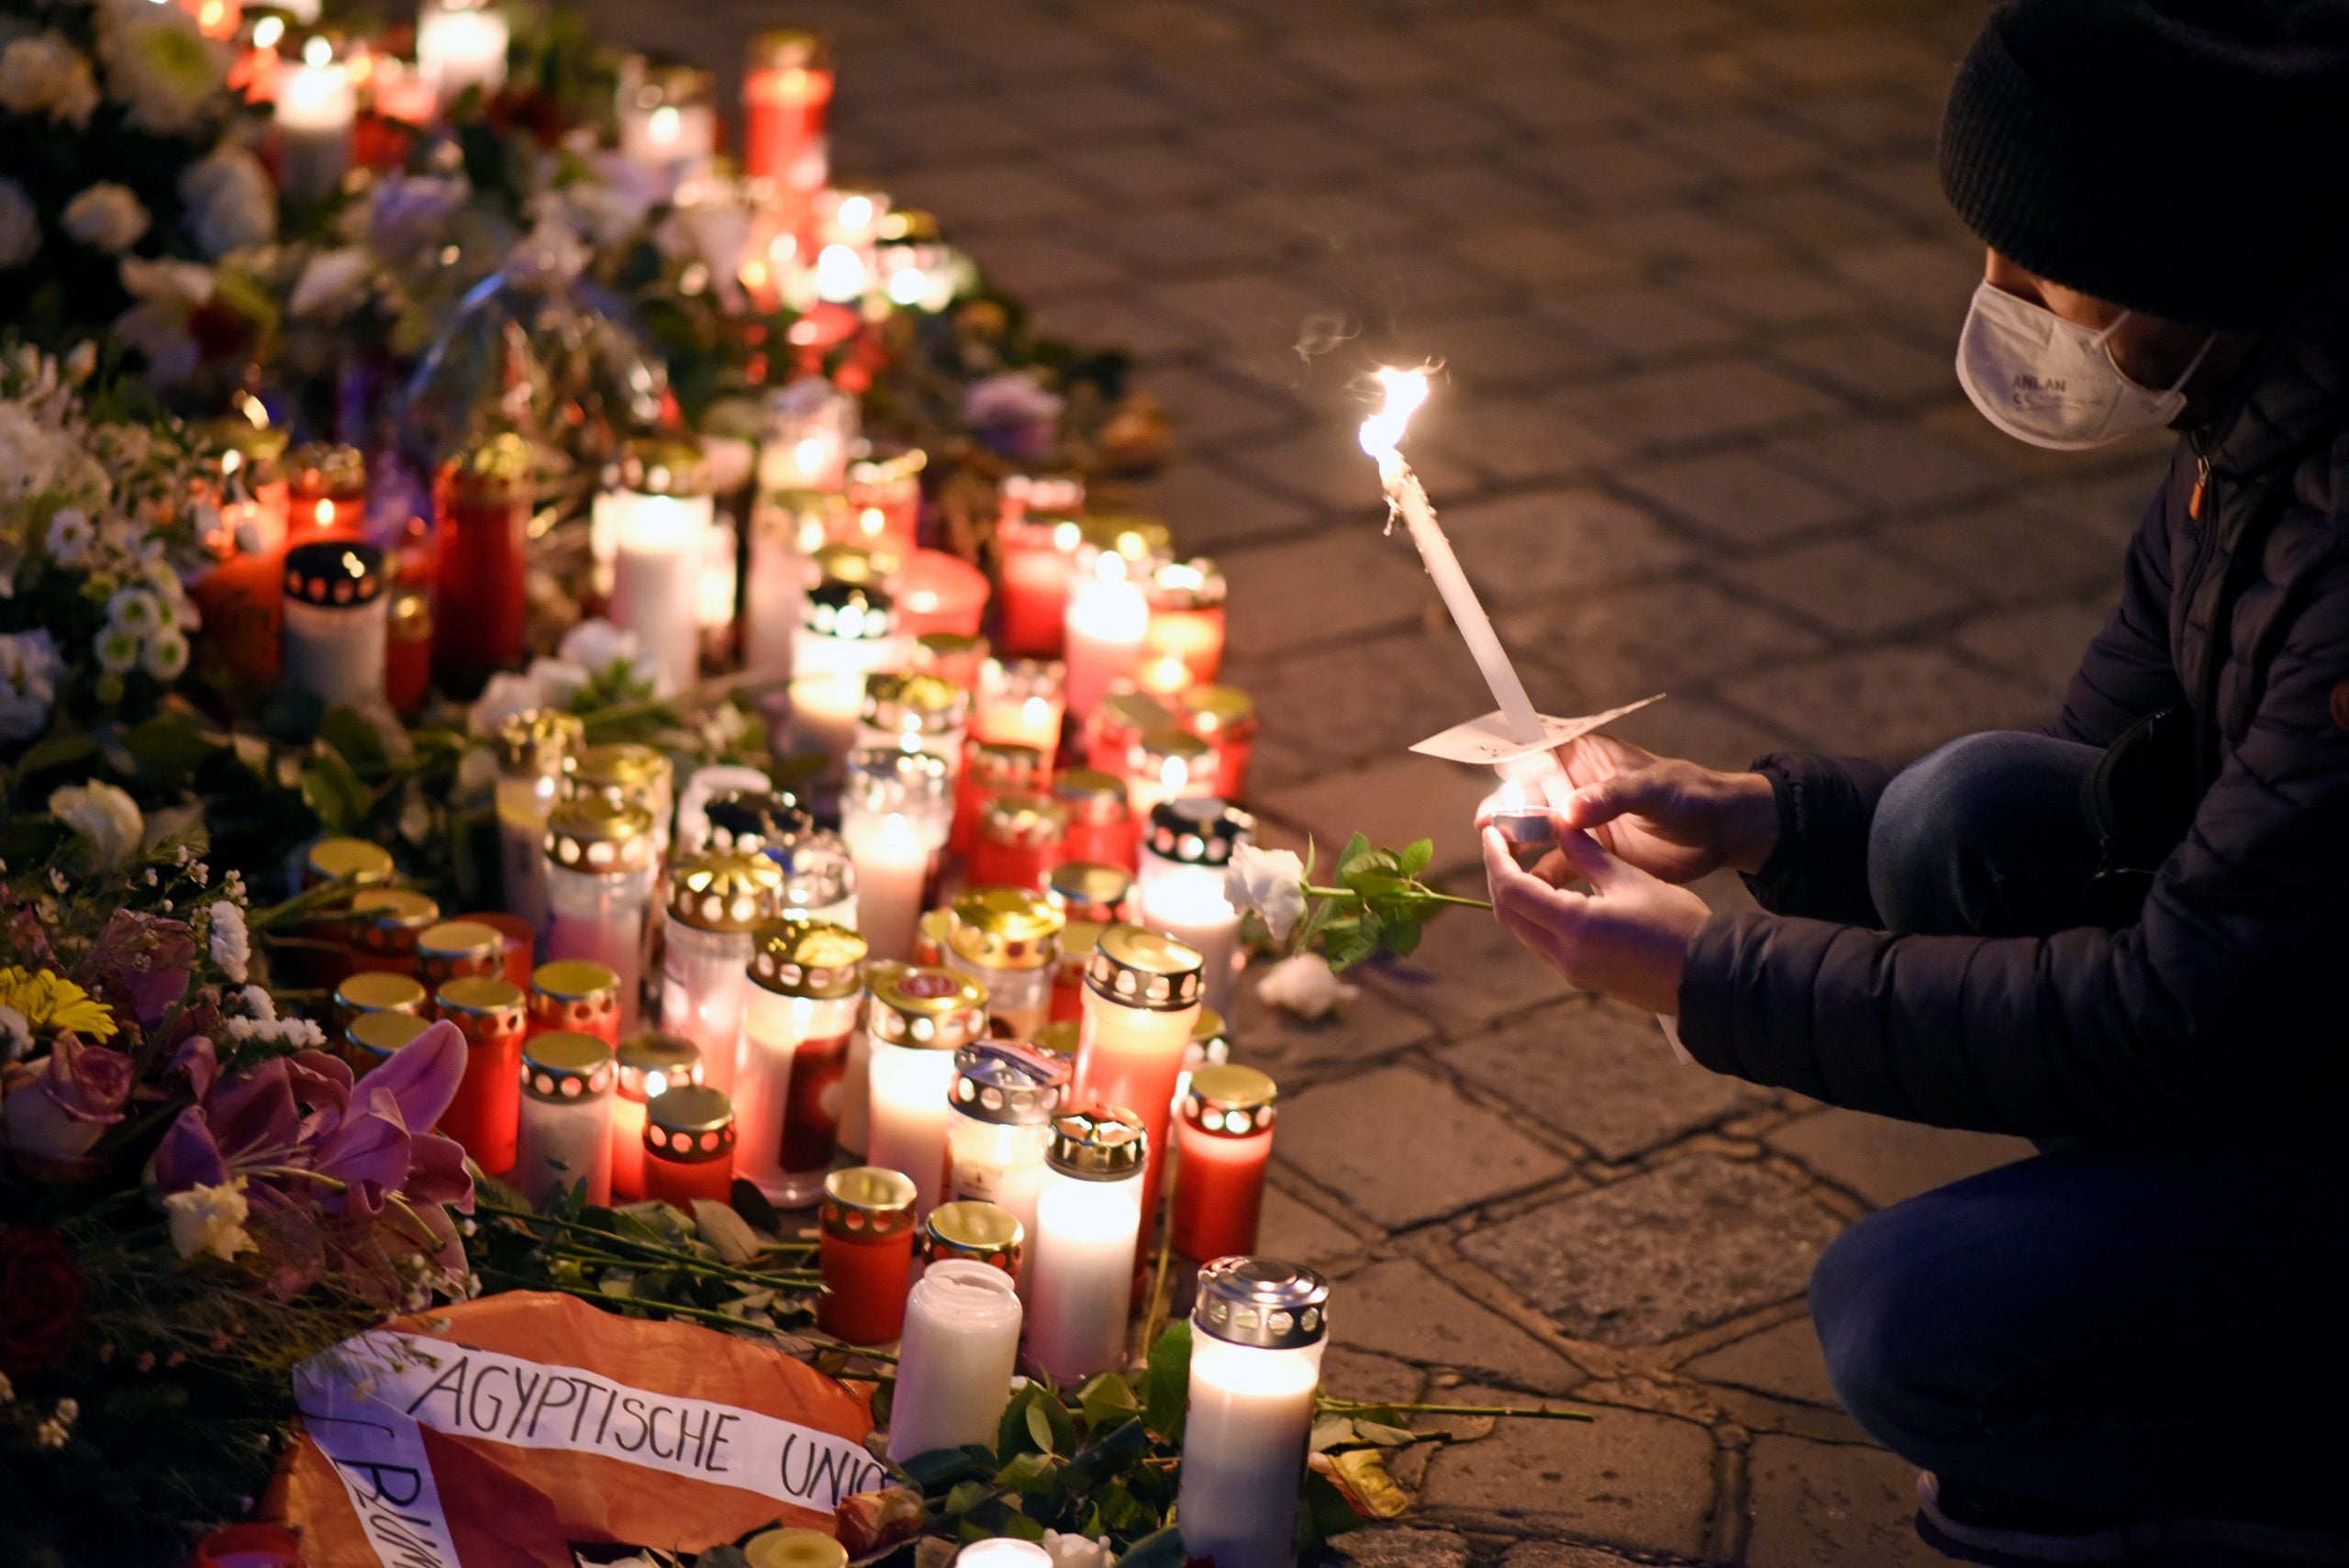 How terror returned to the streets of Europe